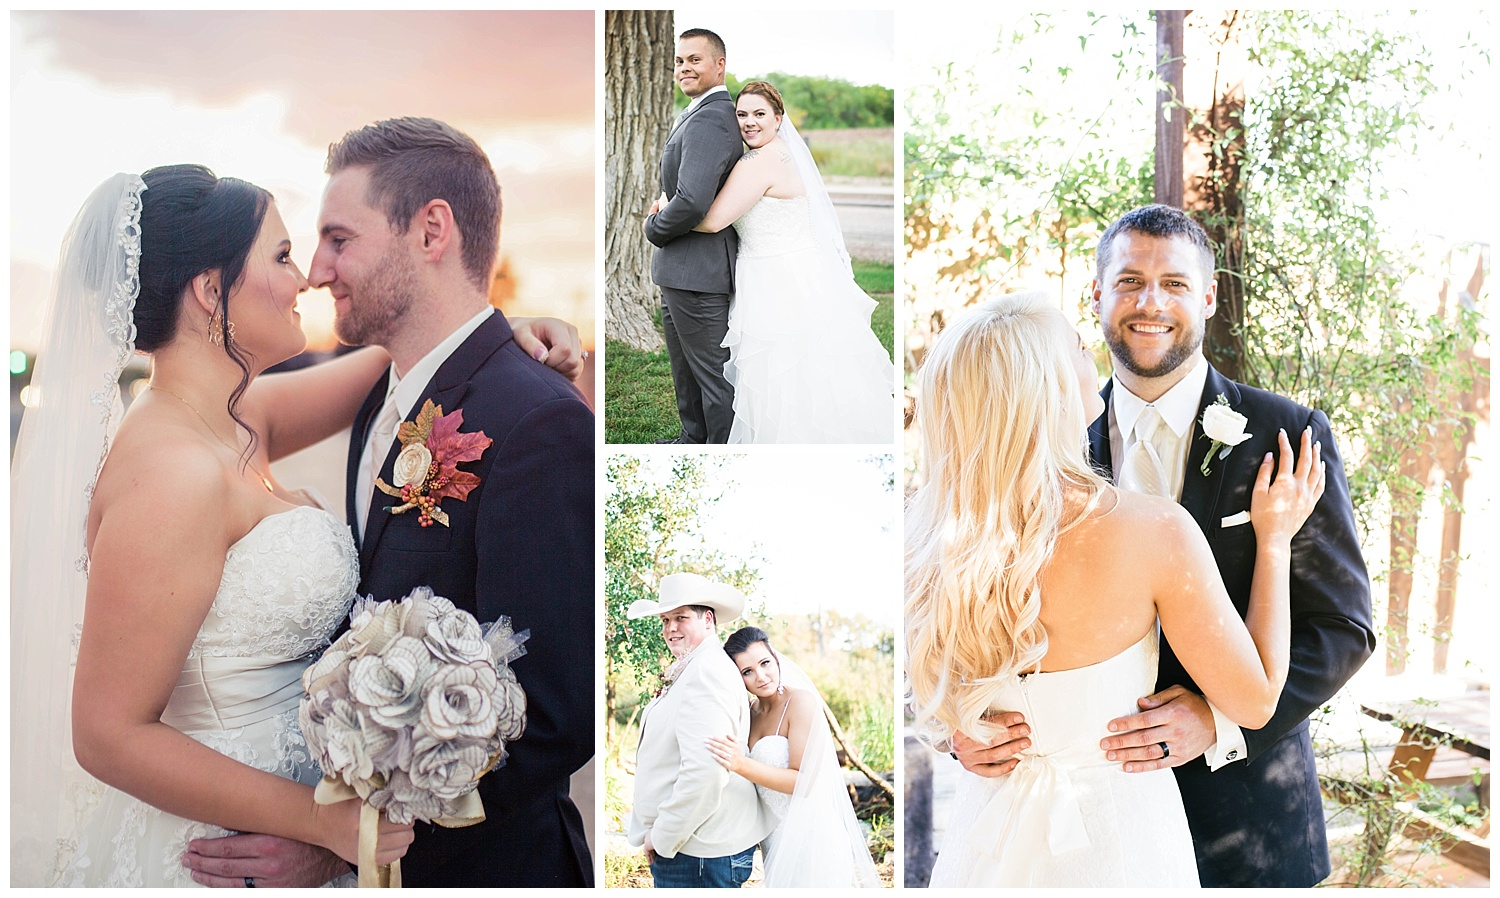 Bride holding her groom. Some of the most stunning bridal portraits. They are genuine, and full of love